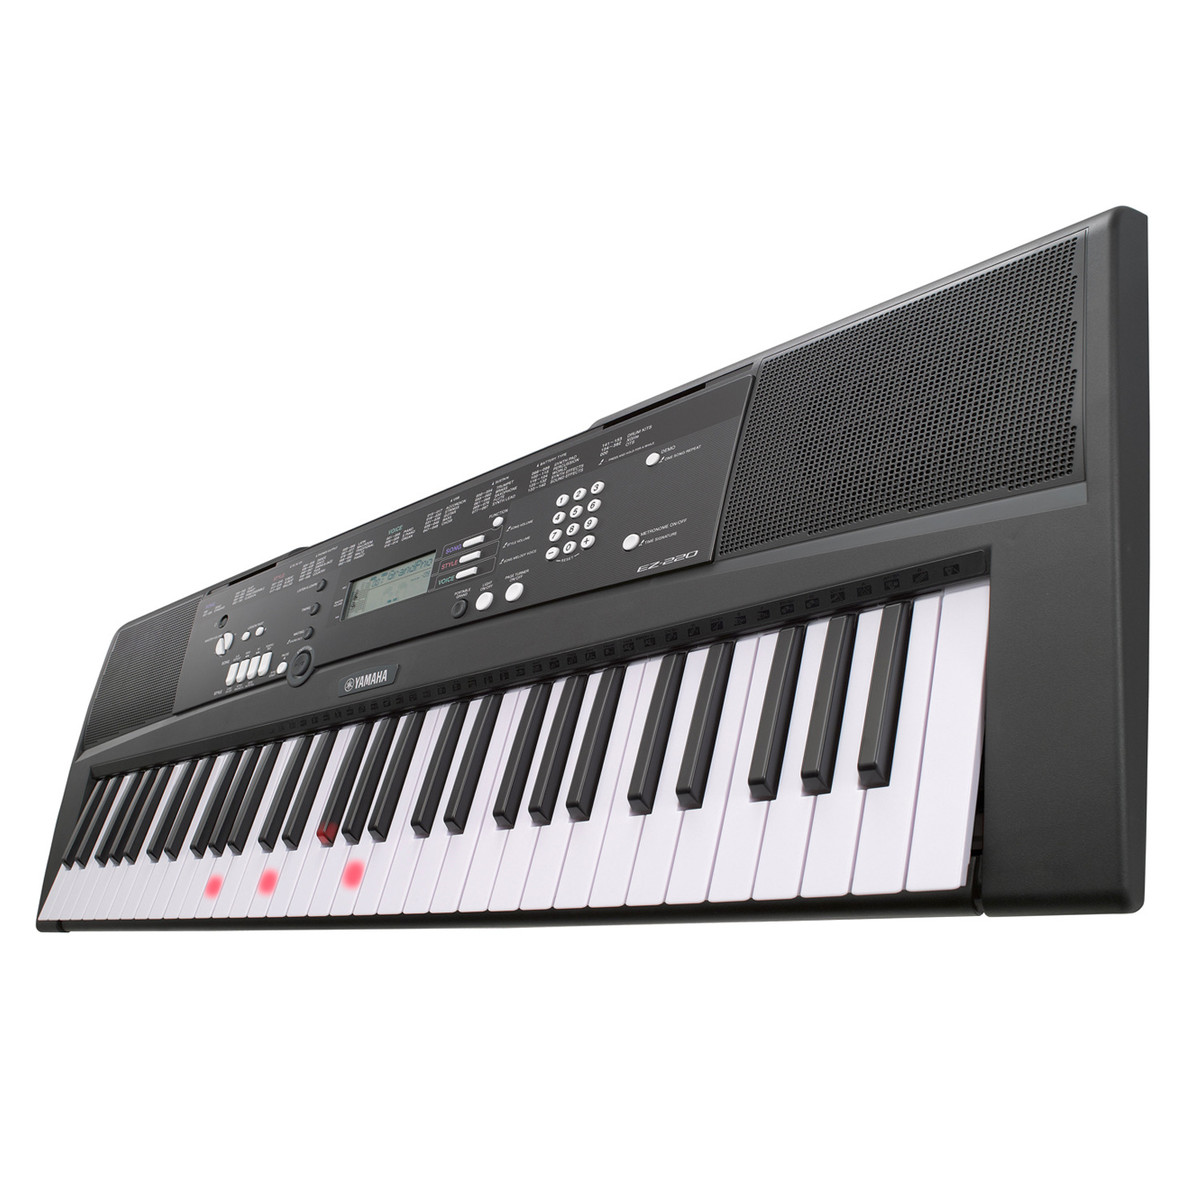 yamaha ez 220 keylighting home keyboard trax music store. Black Bedroom Furniture Sets. Home Design Ideas